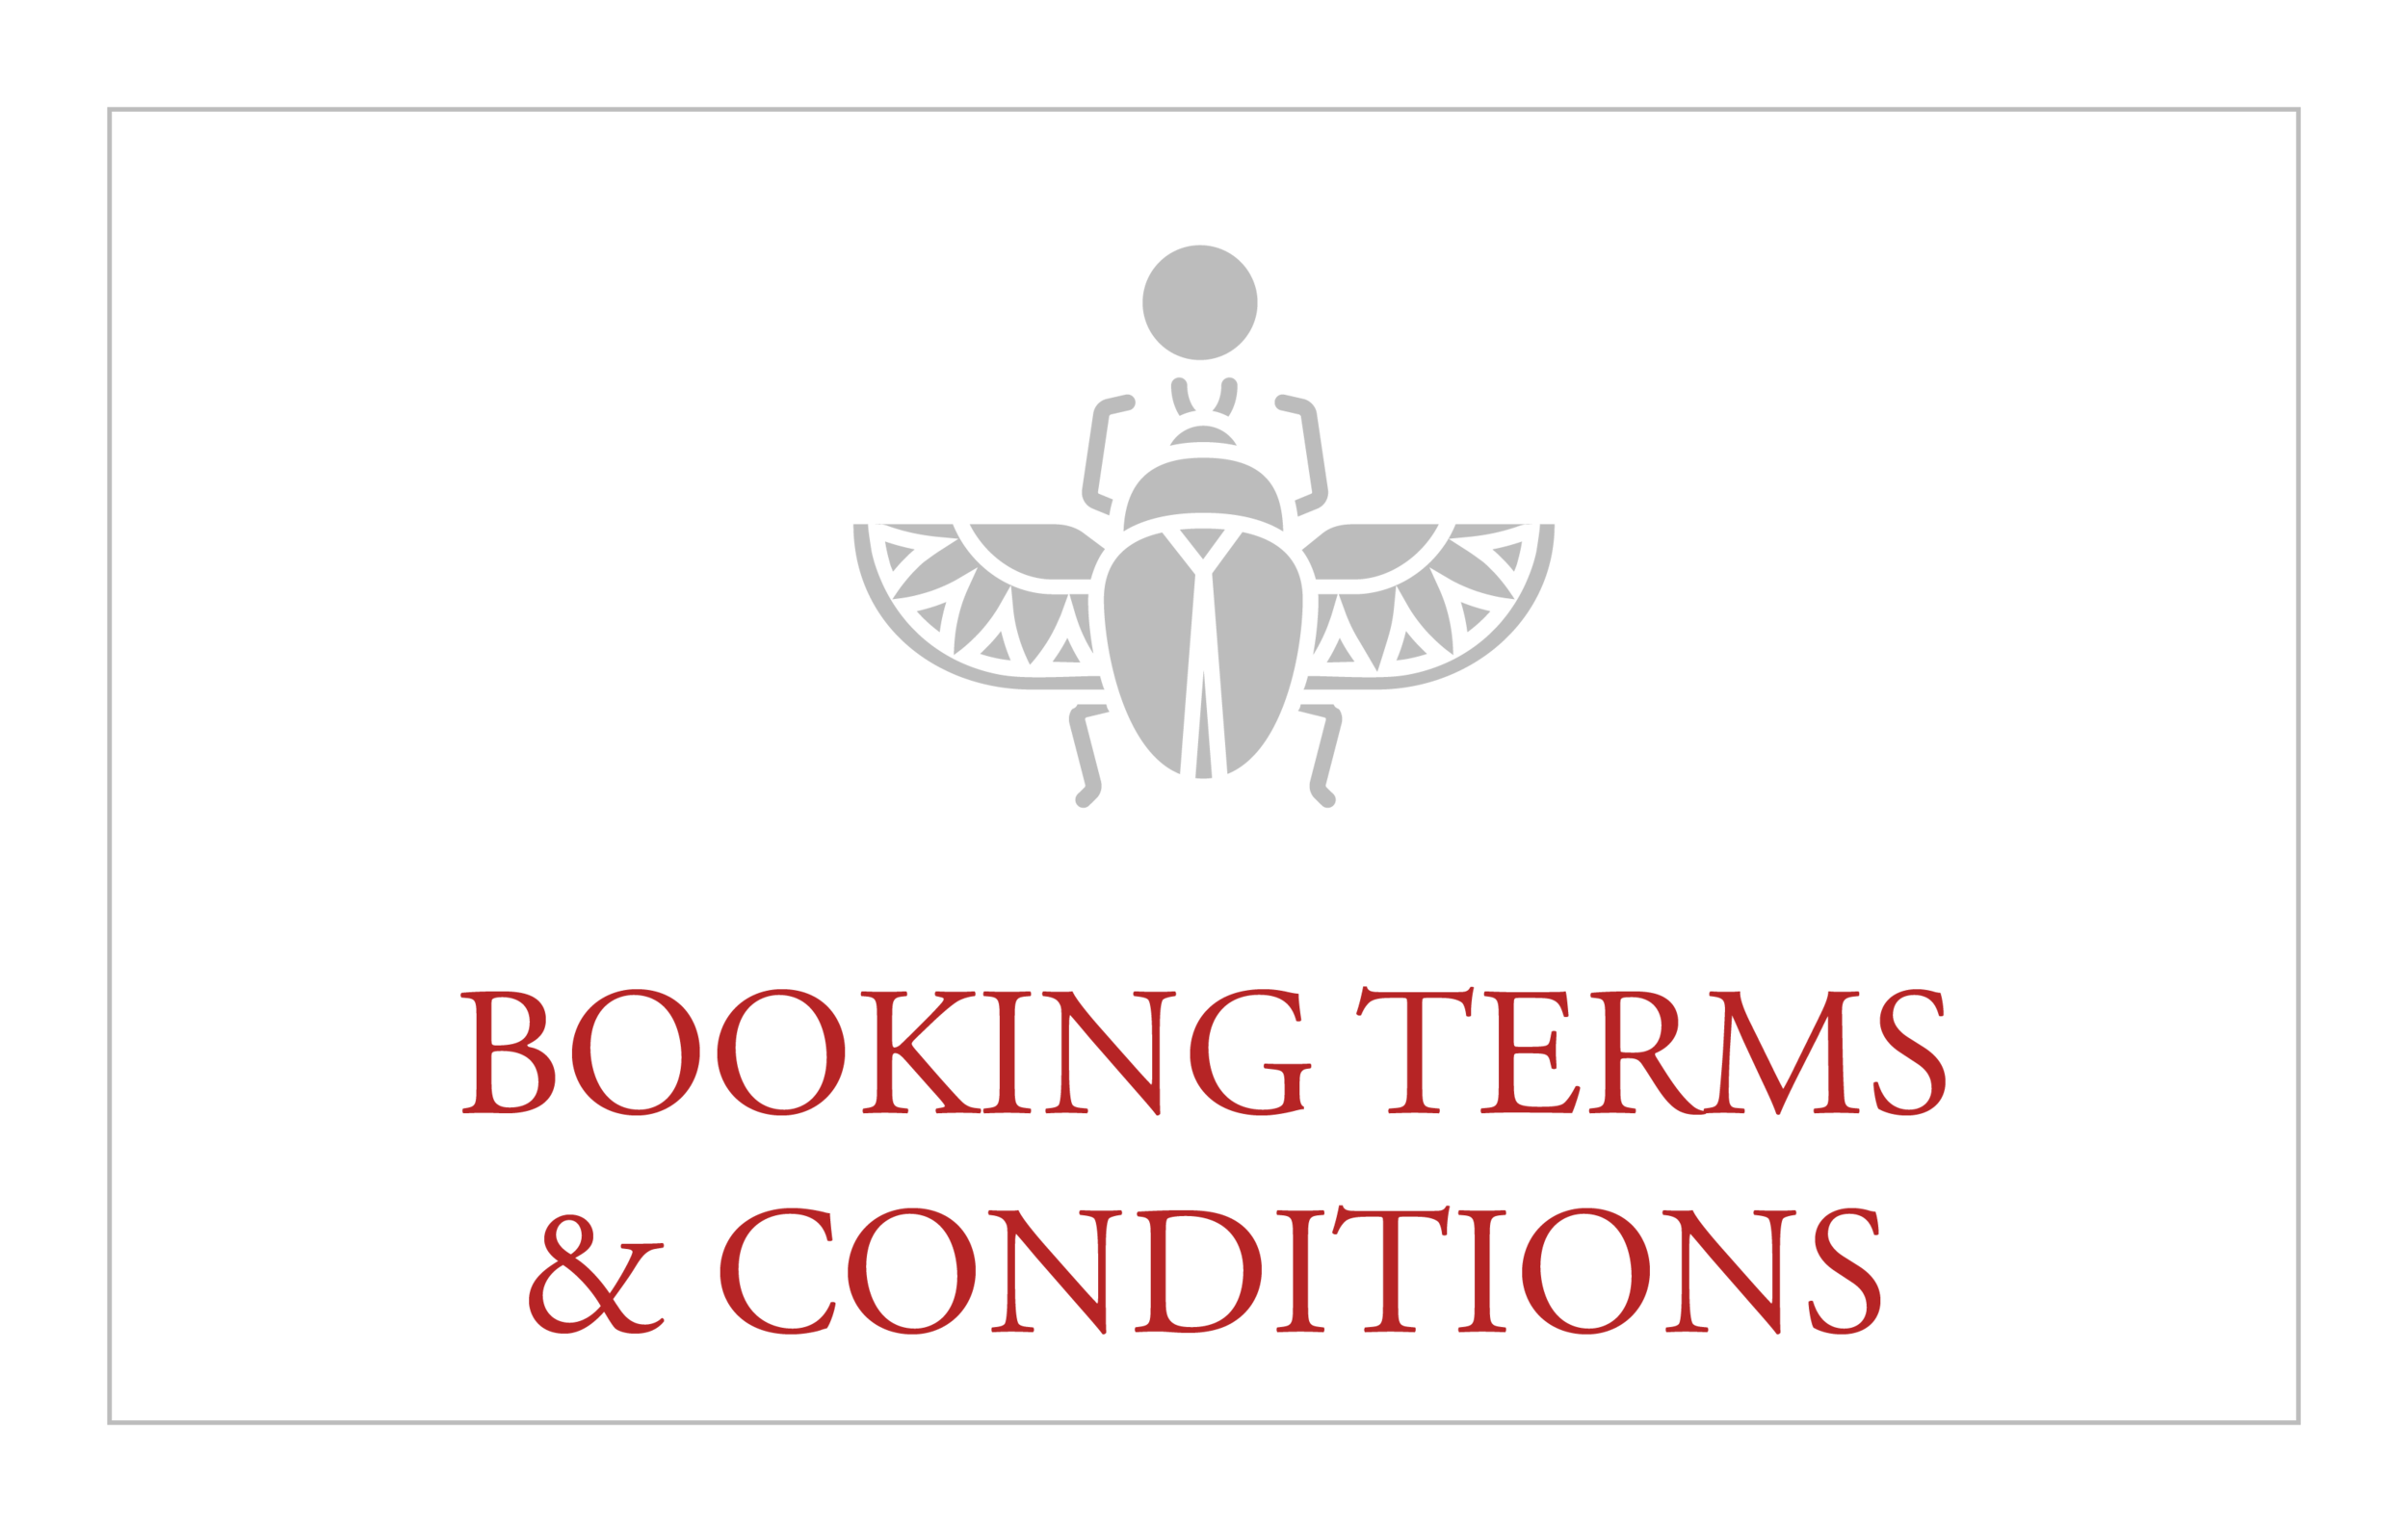 Booking-Terms-Conditions-01.png